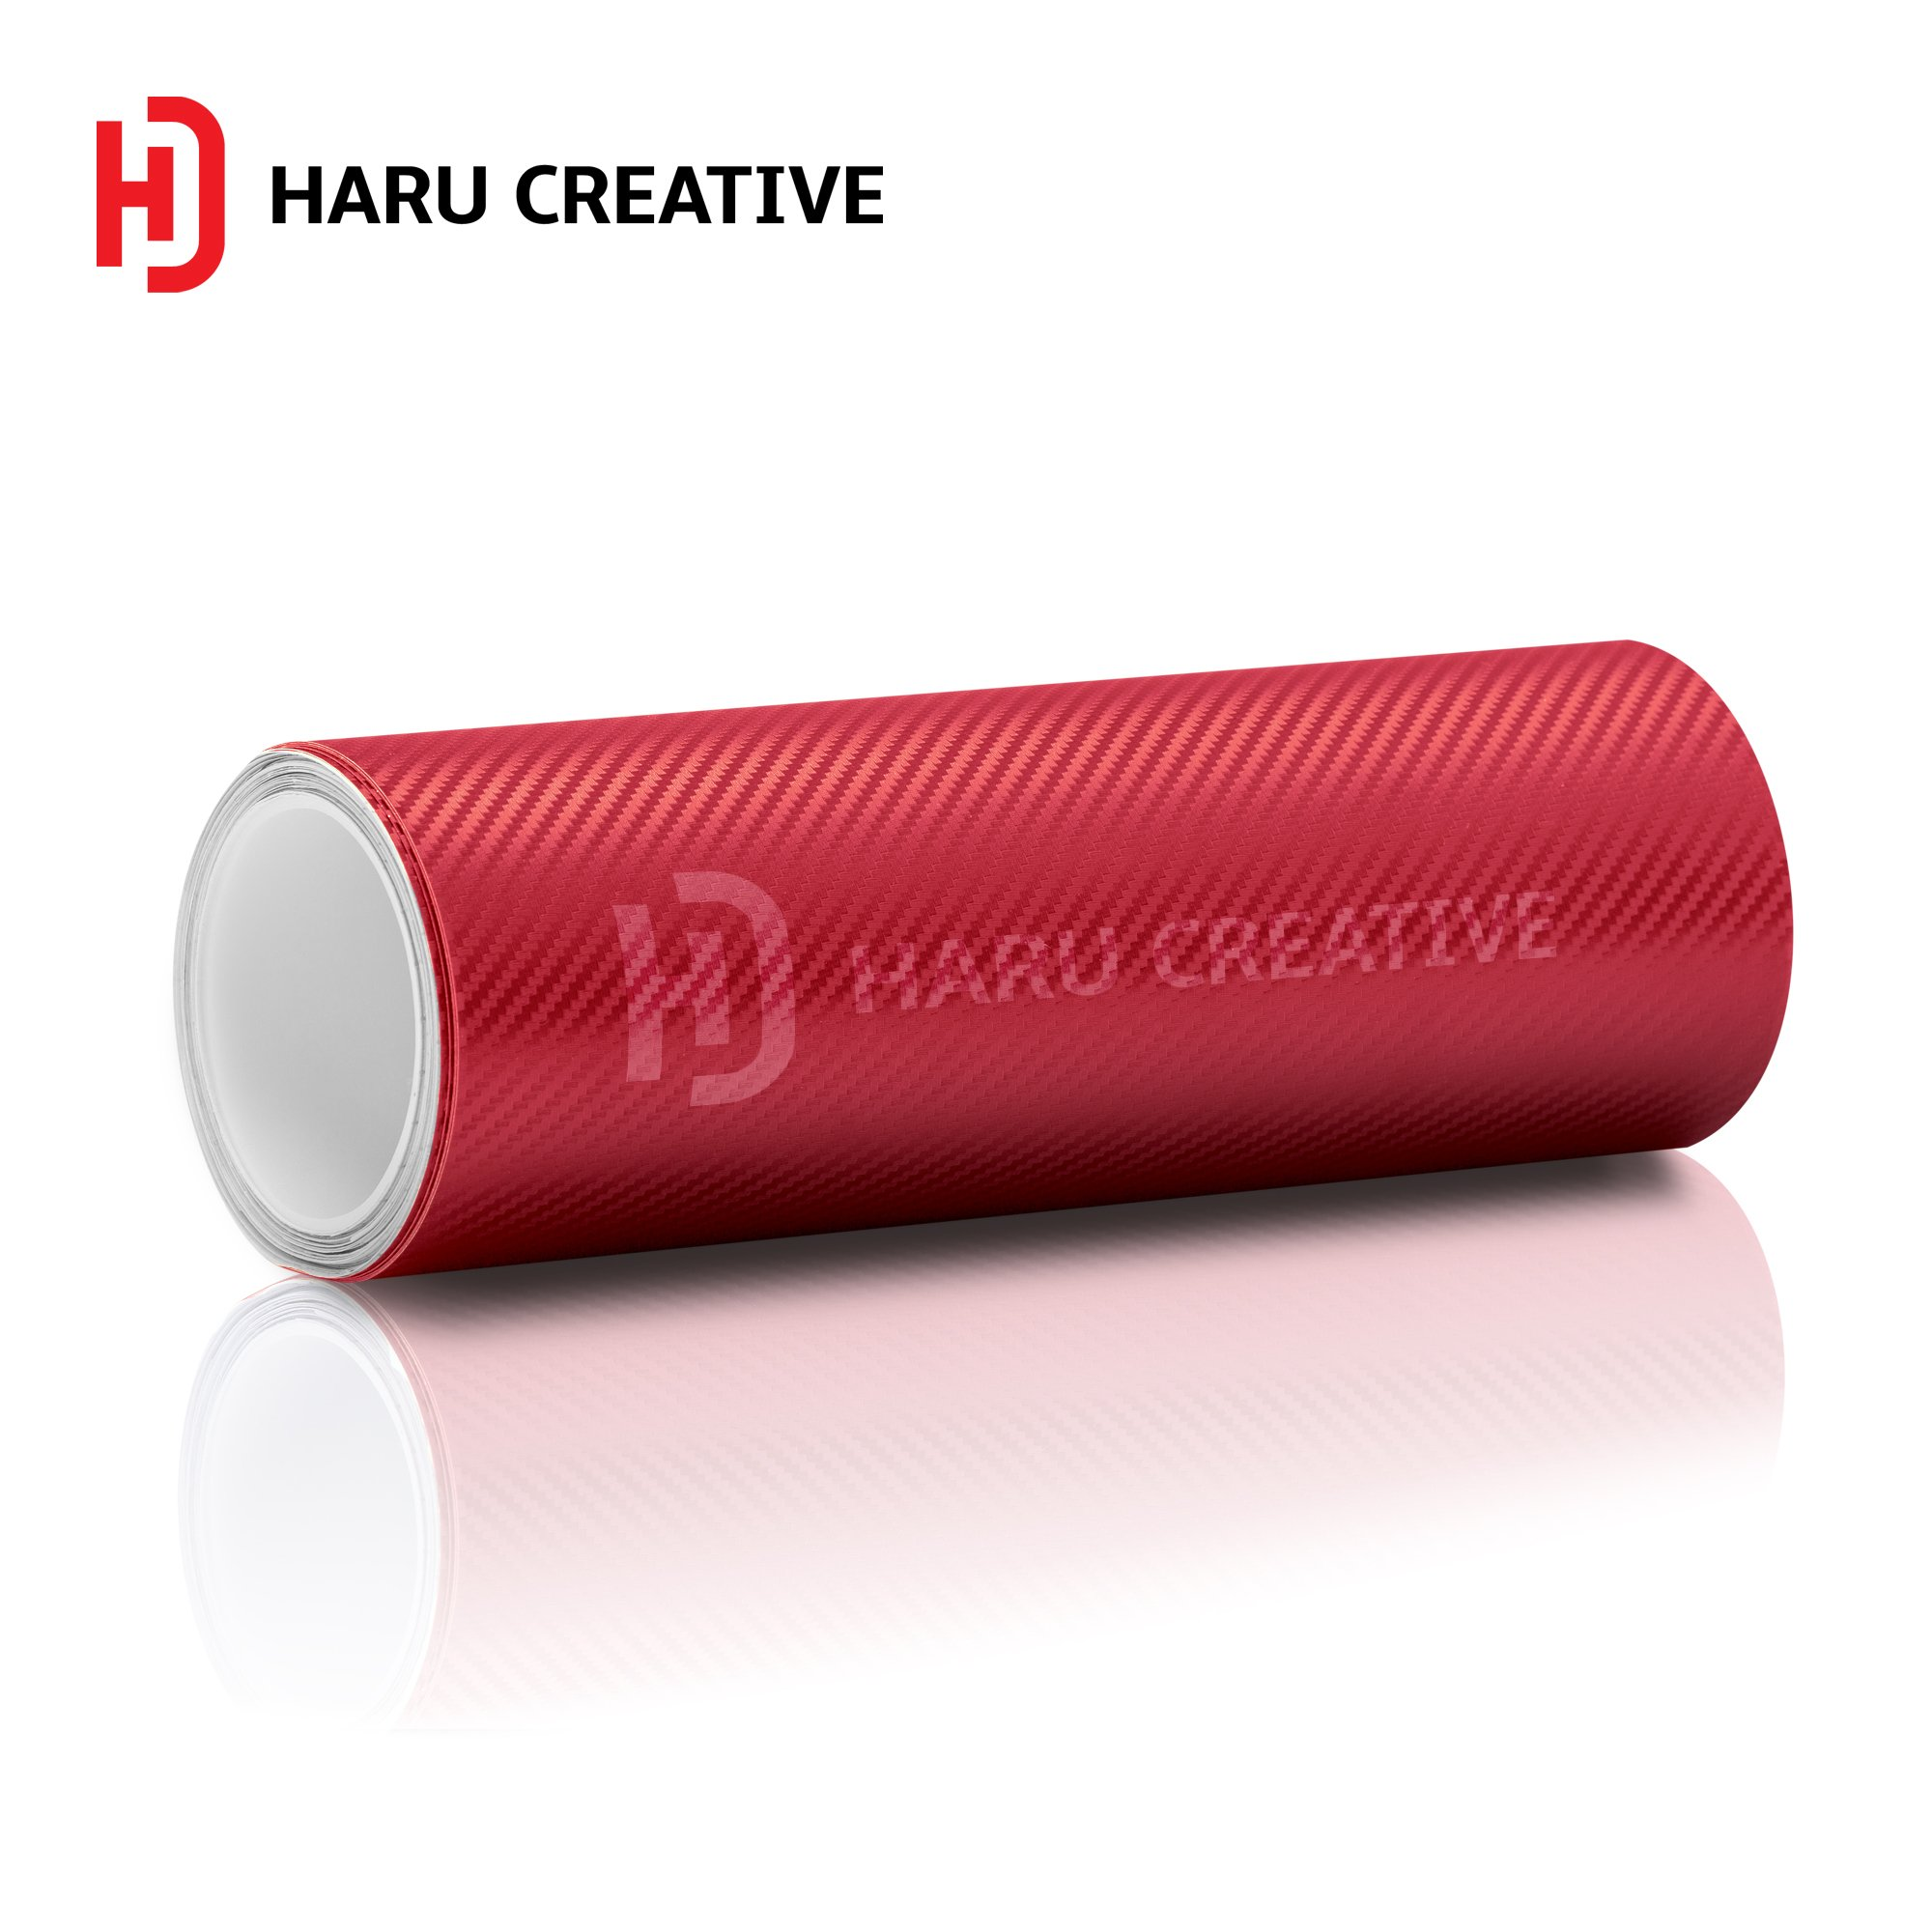 Haru Creative 3D Carbon Fiber Matte Vinyl Wrap Roll with Air Release Technology - Red - 60'' x 240'' in / 5FT x 20FT